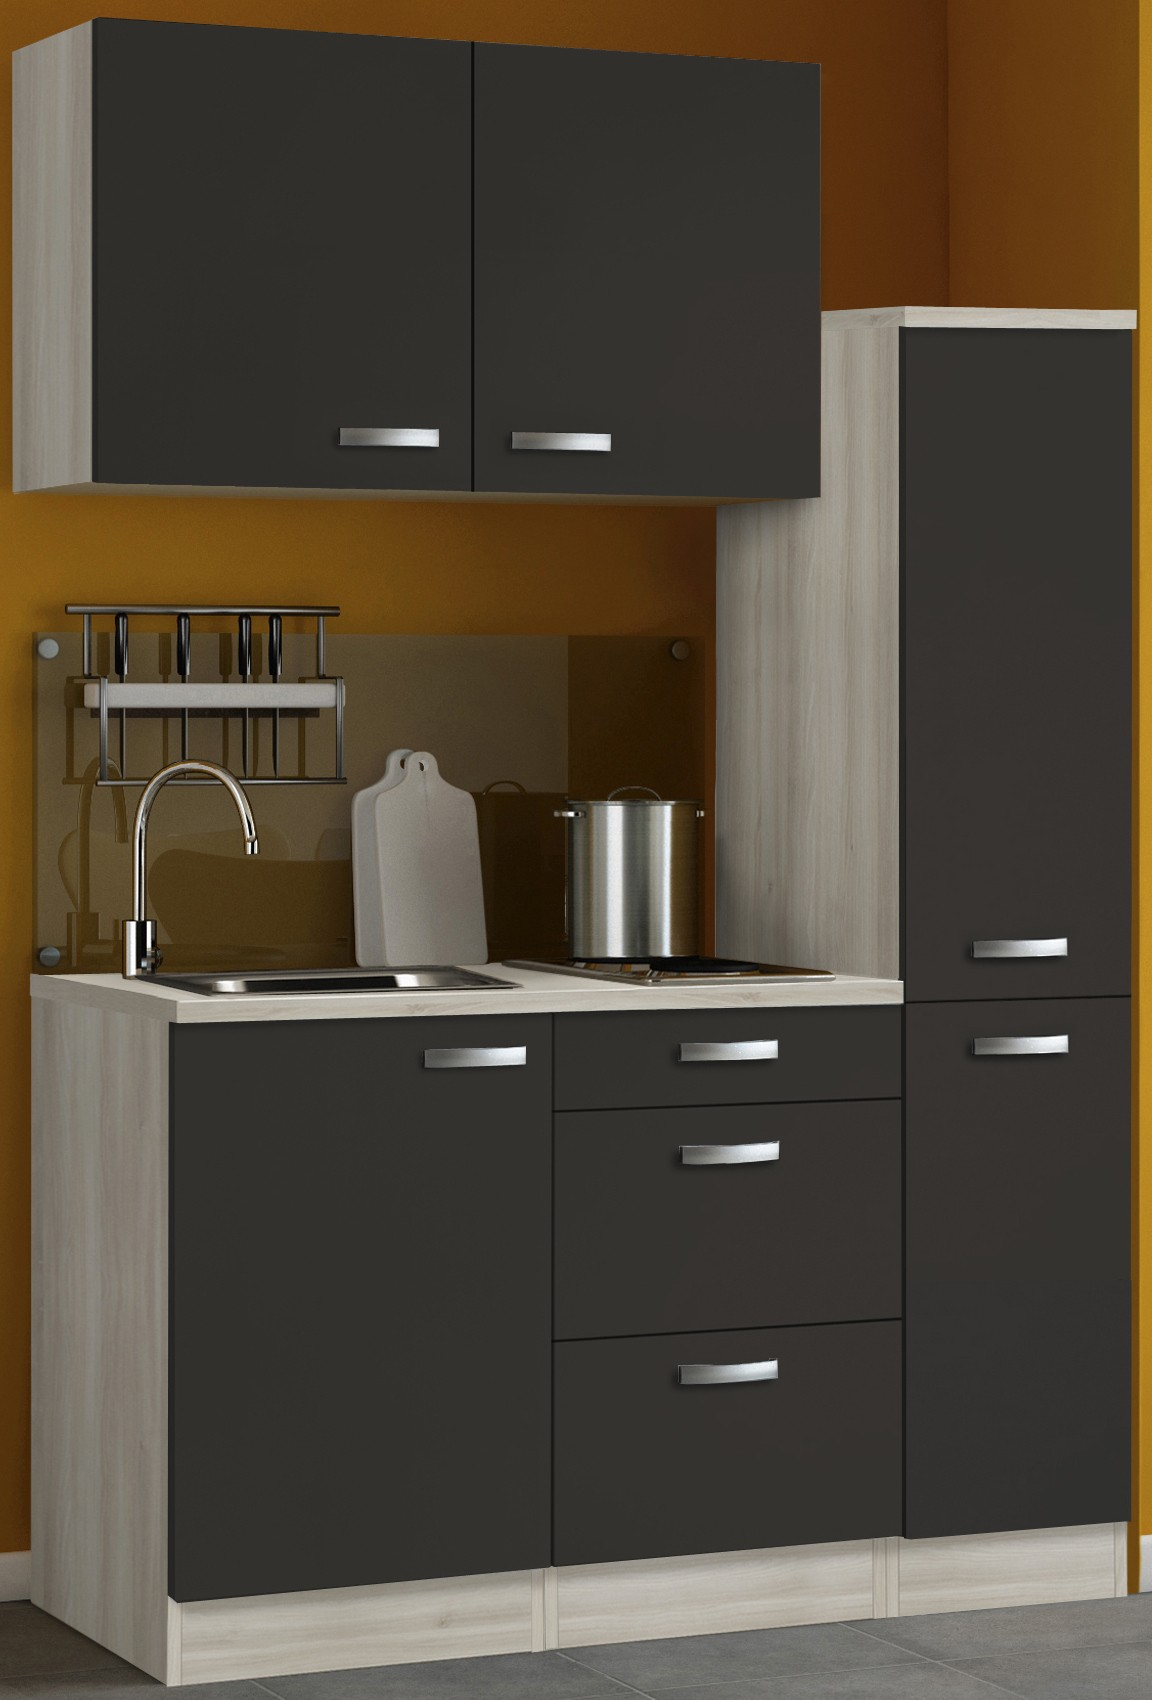 singlek che barcelona mit elektro kochfeld breite 130 cm grau k che. Black Bedroom Furniture Sets. Home Design Ideas